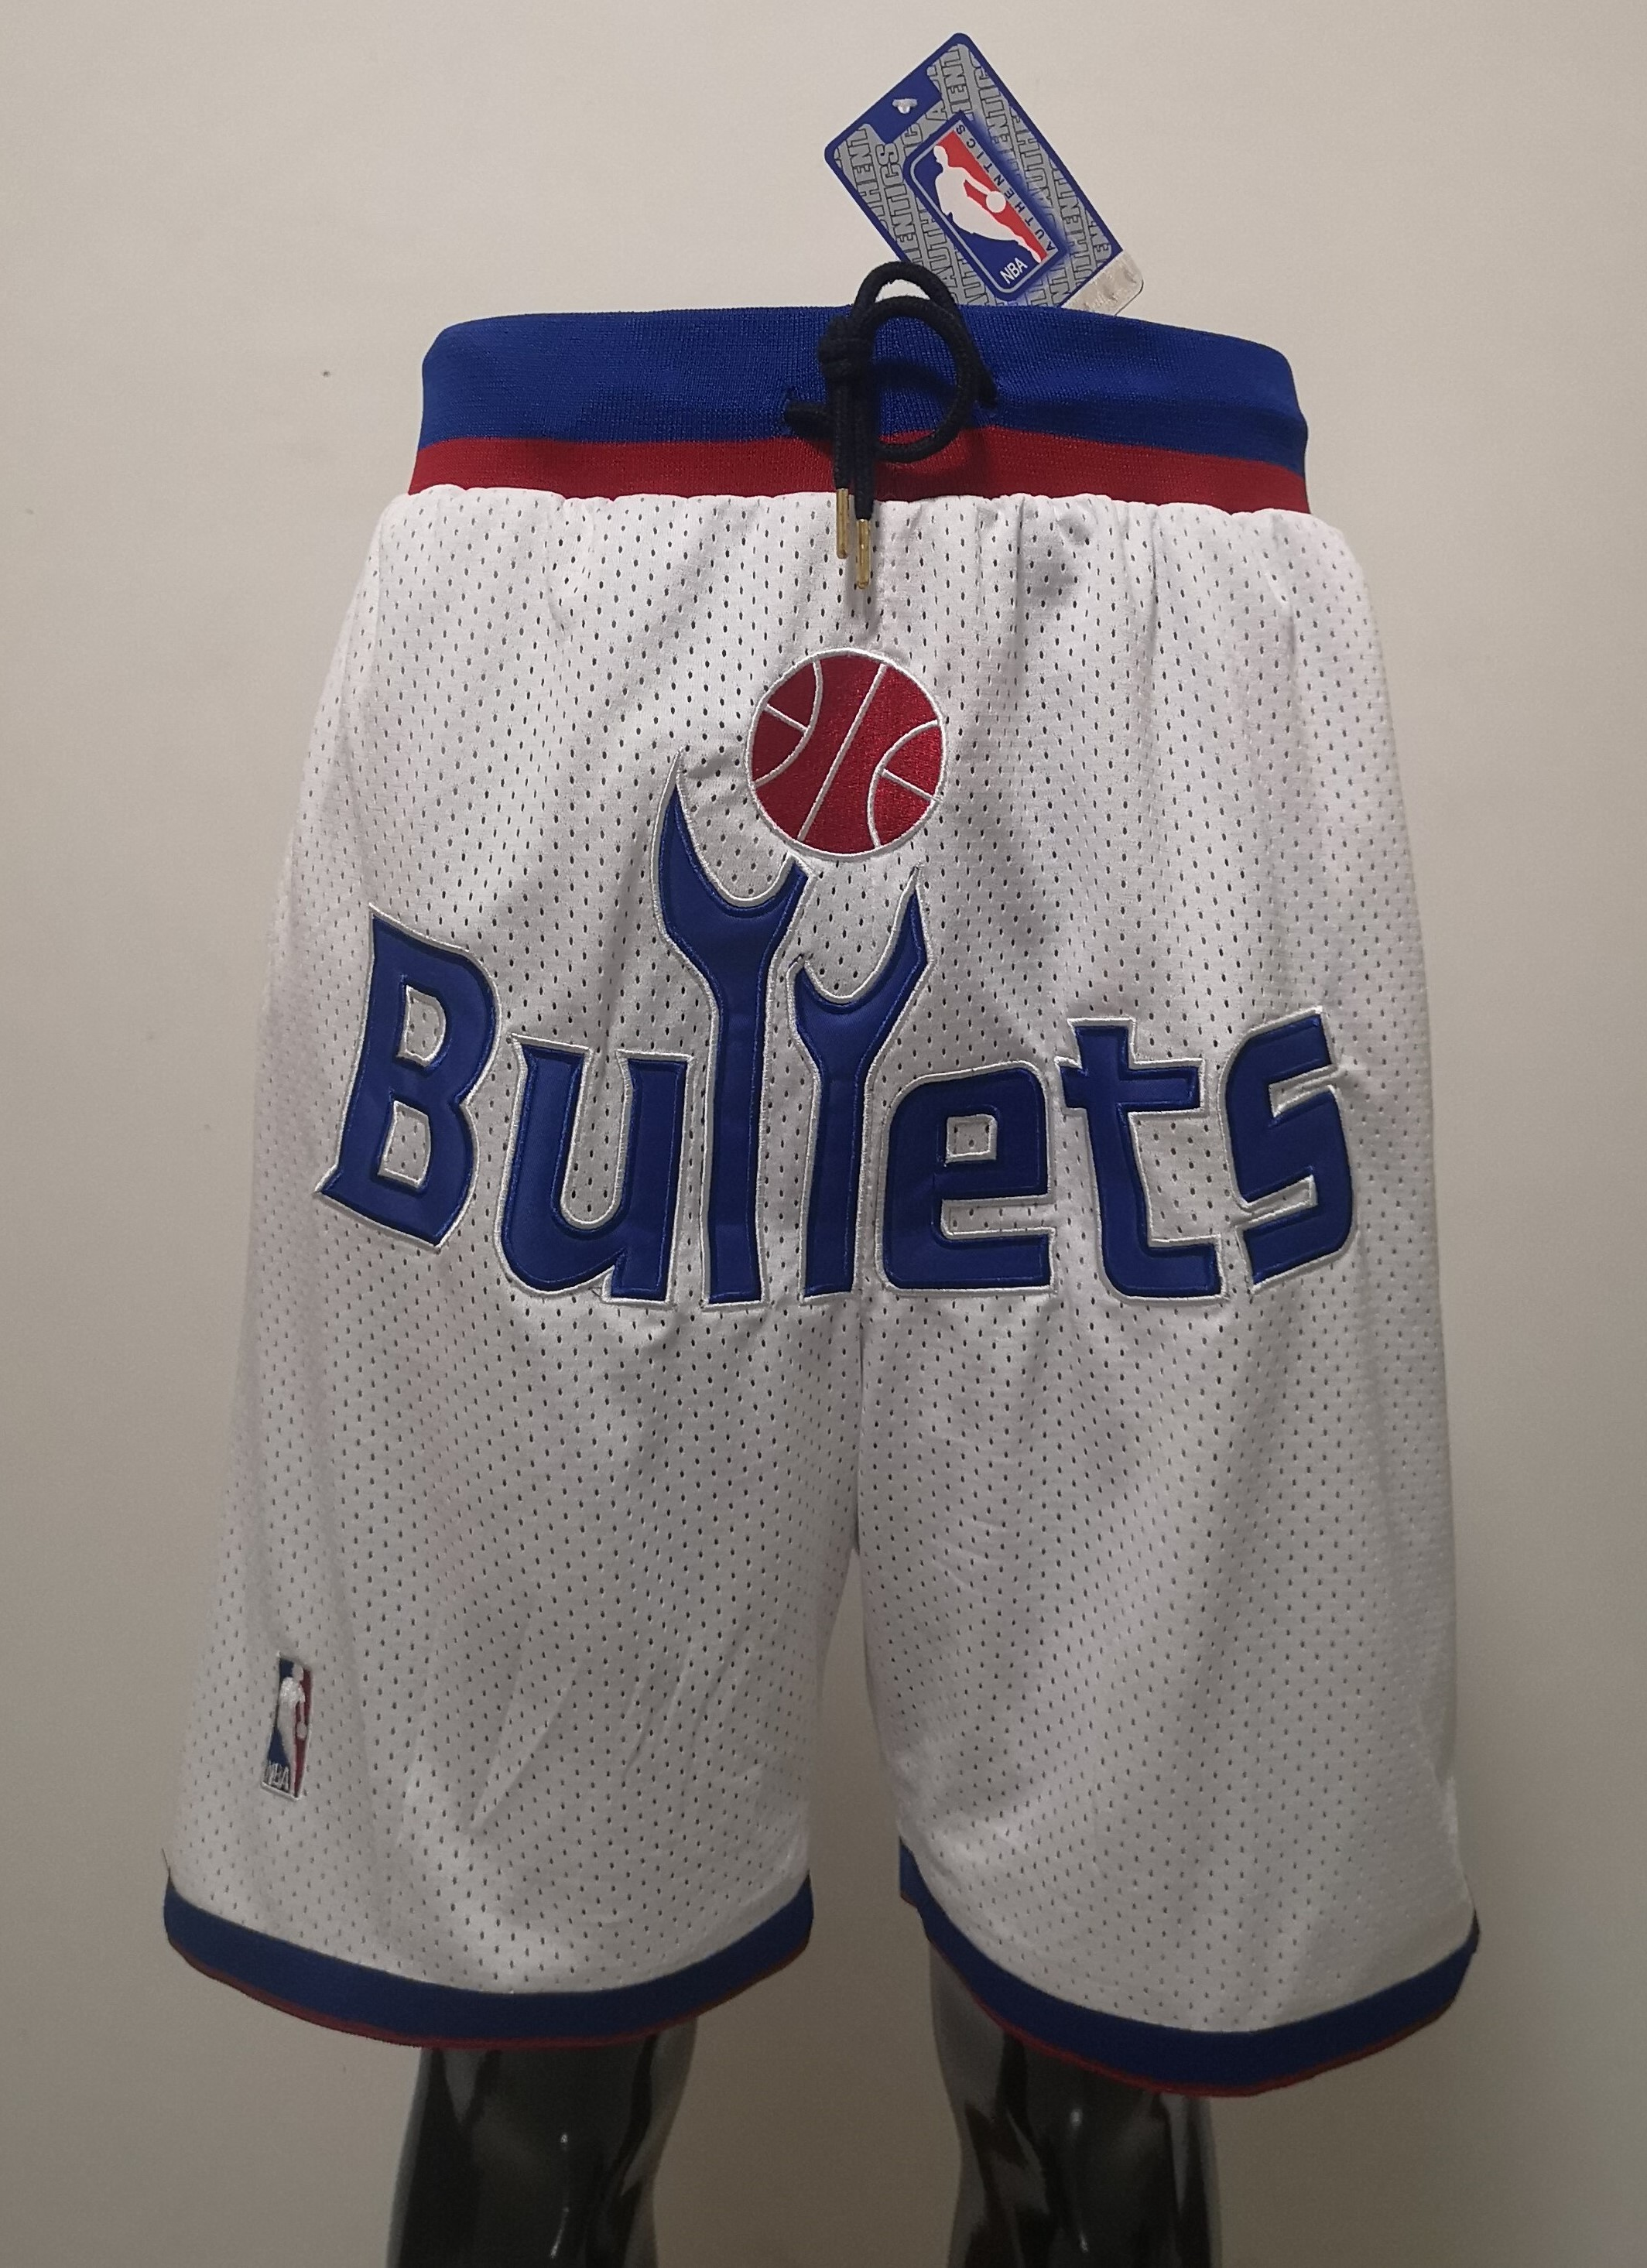 2020 Men NBA Chicago Bulls white 04 shorts